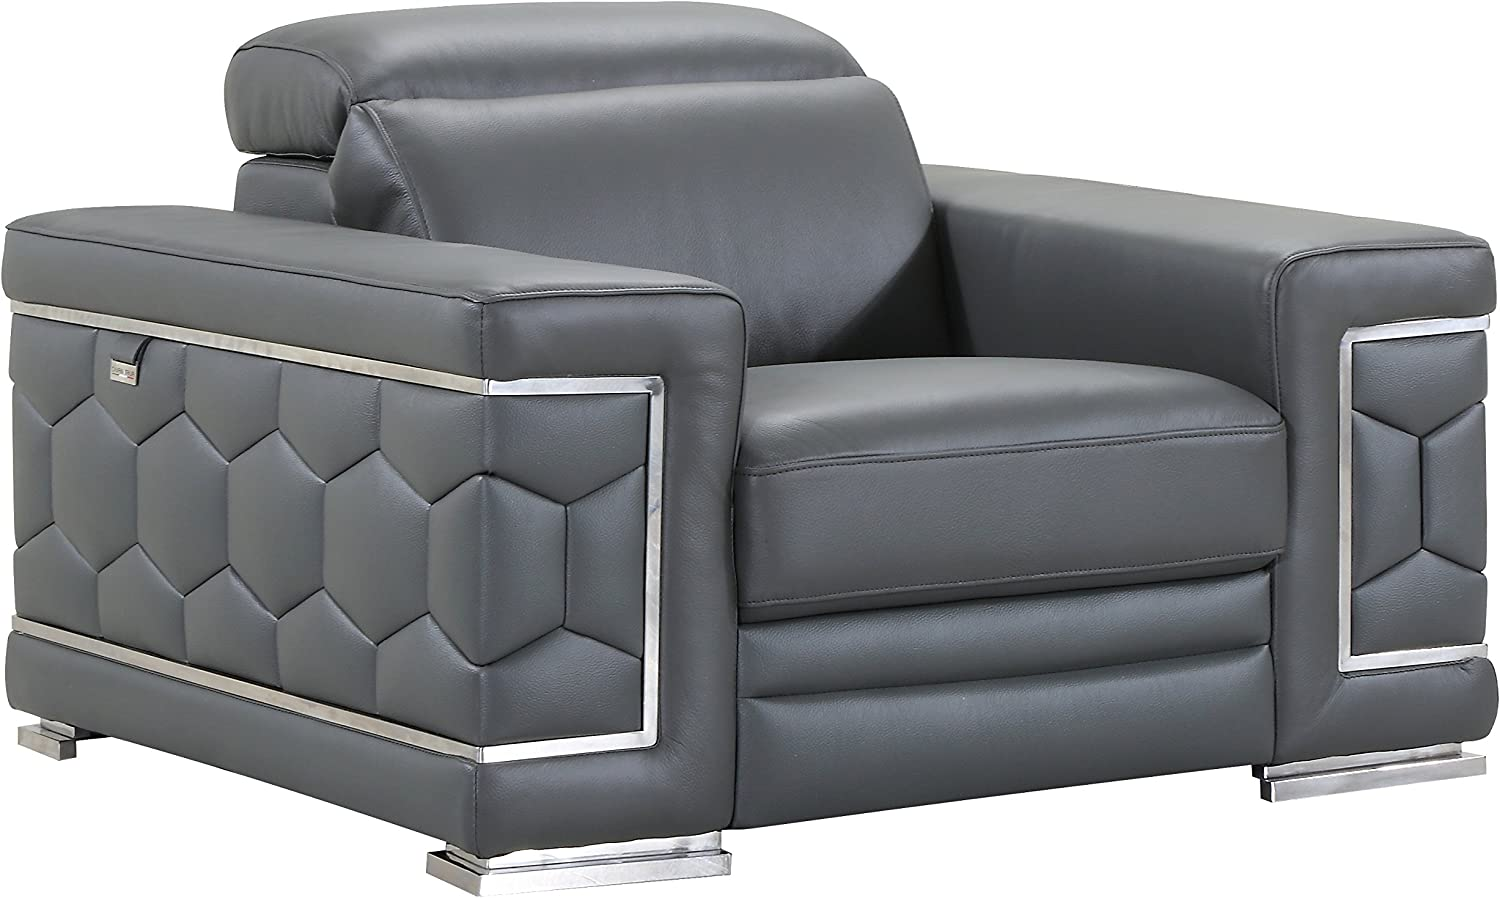 Blackjack Furniture The Usry Collection Genuine Italian Leather Upholstered Living Room Accent Chair, Dark Gray